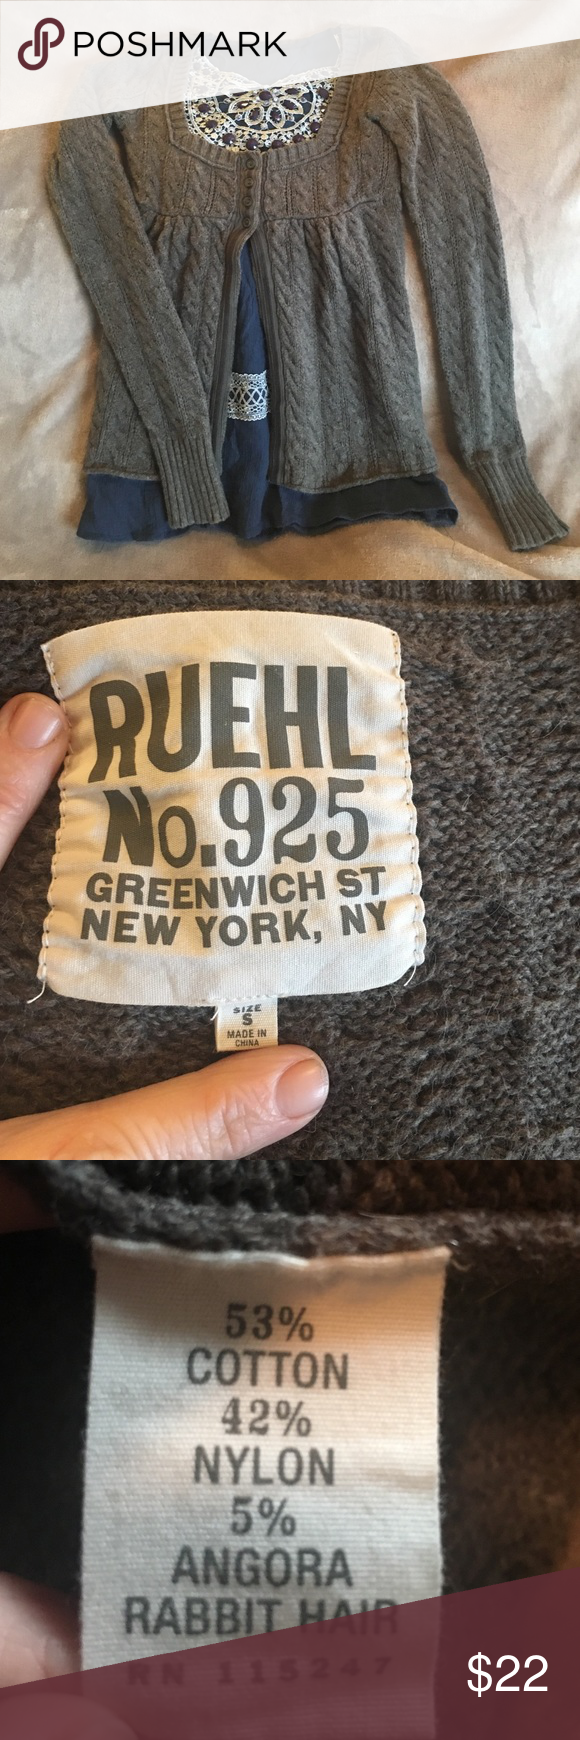 Ruehl No.925 angora blend cardigan. So soft! Lovely, densely knit, angora blend cardigan; perfect for the cooler weather. I wish I were still a size small, but then, you wouldn't be getting this out of my closet, lol! Ruehl No. 925 Sweaters Cardigans